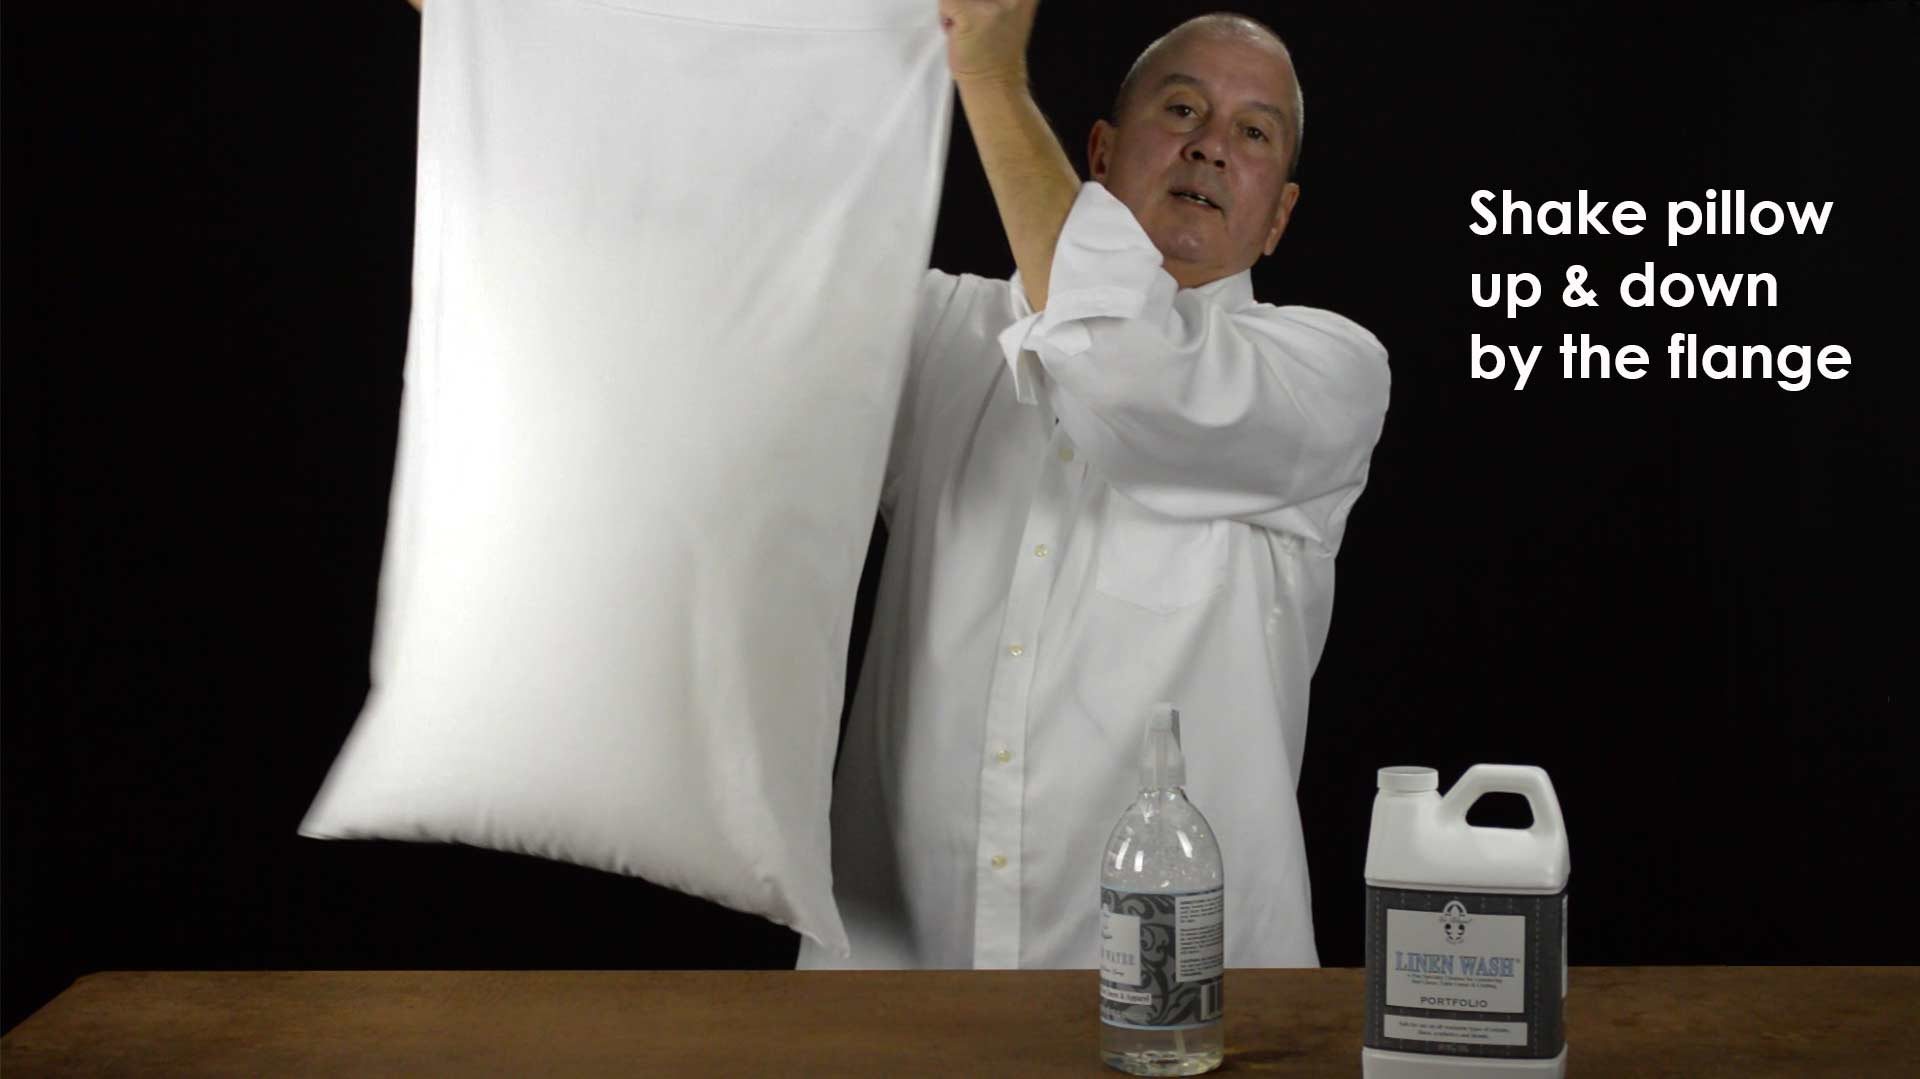 A spray bottle of water can remove wrinkles in your bed linens